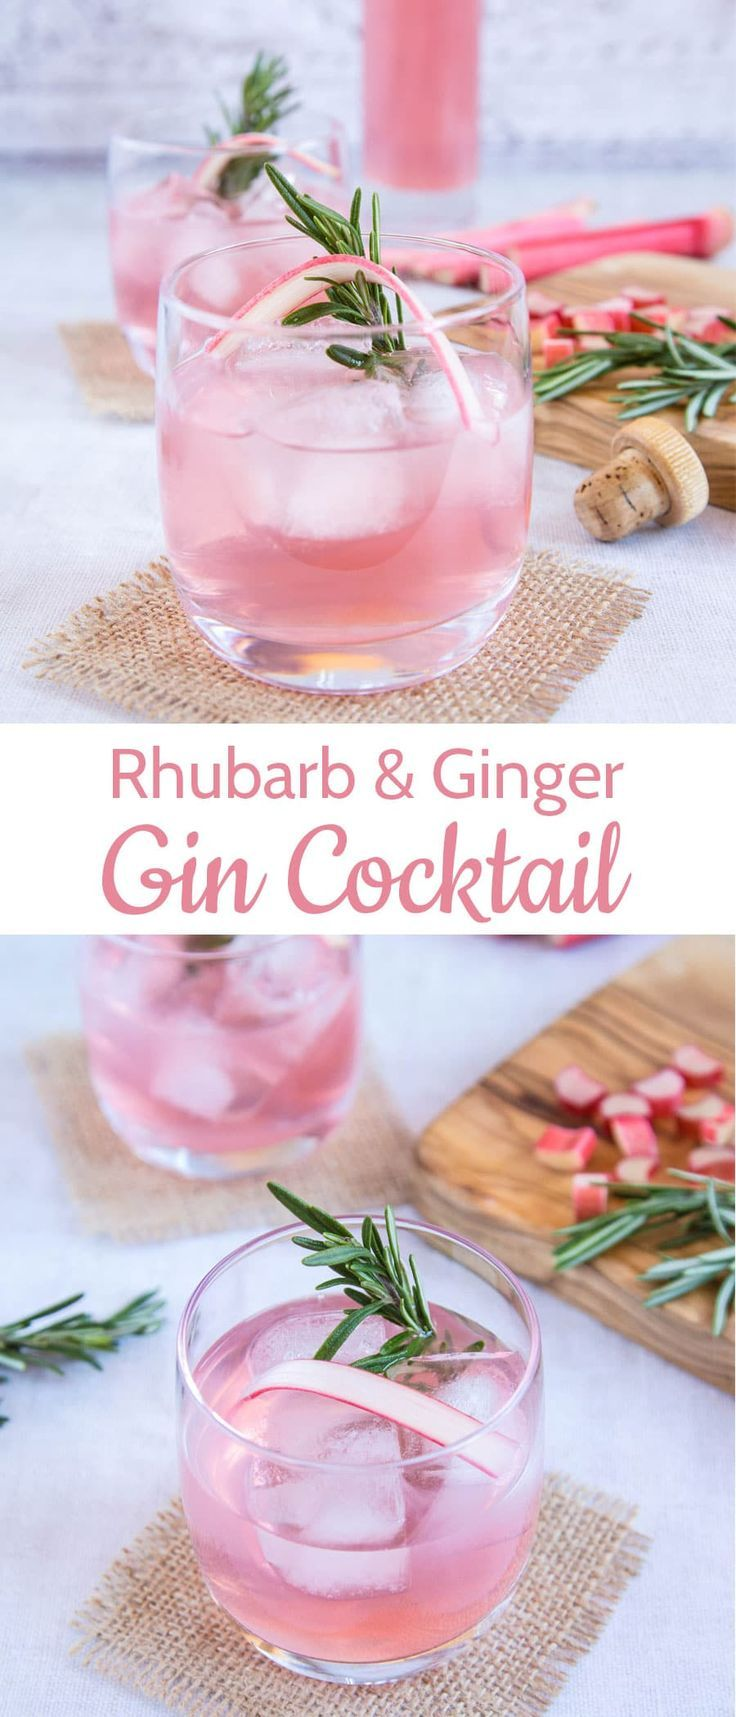 Rhubarb and Ginger Gin - A Refreshing Cocktail!